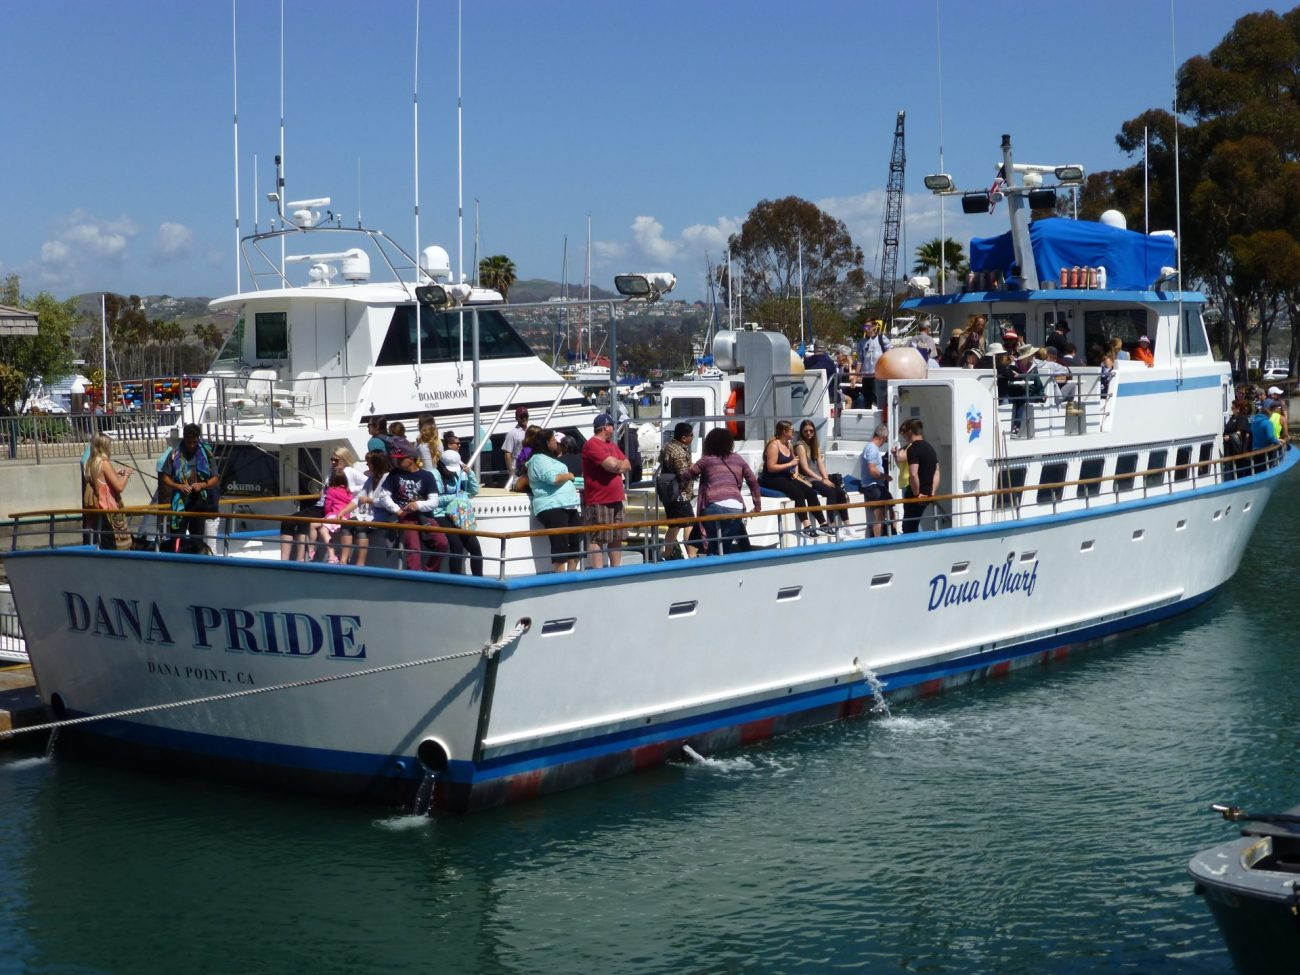 Whale watching in Dana Point from the Dana Pride boat.